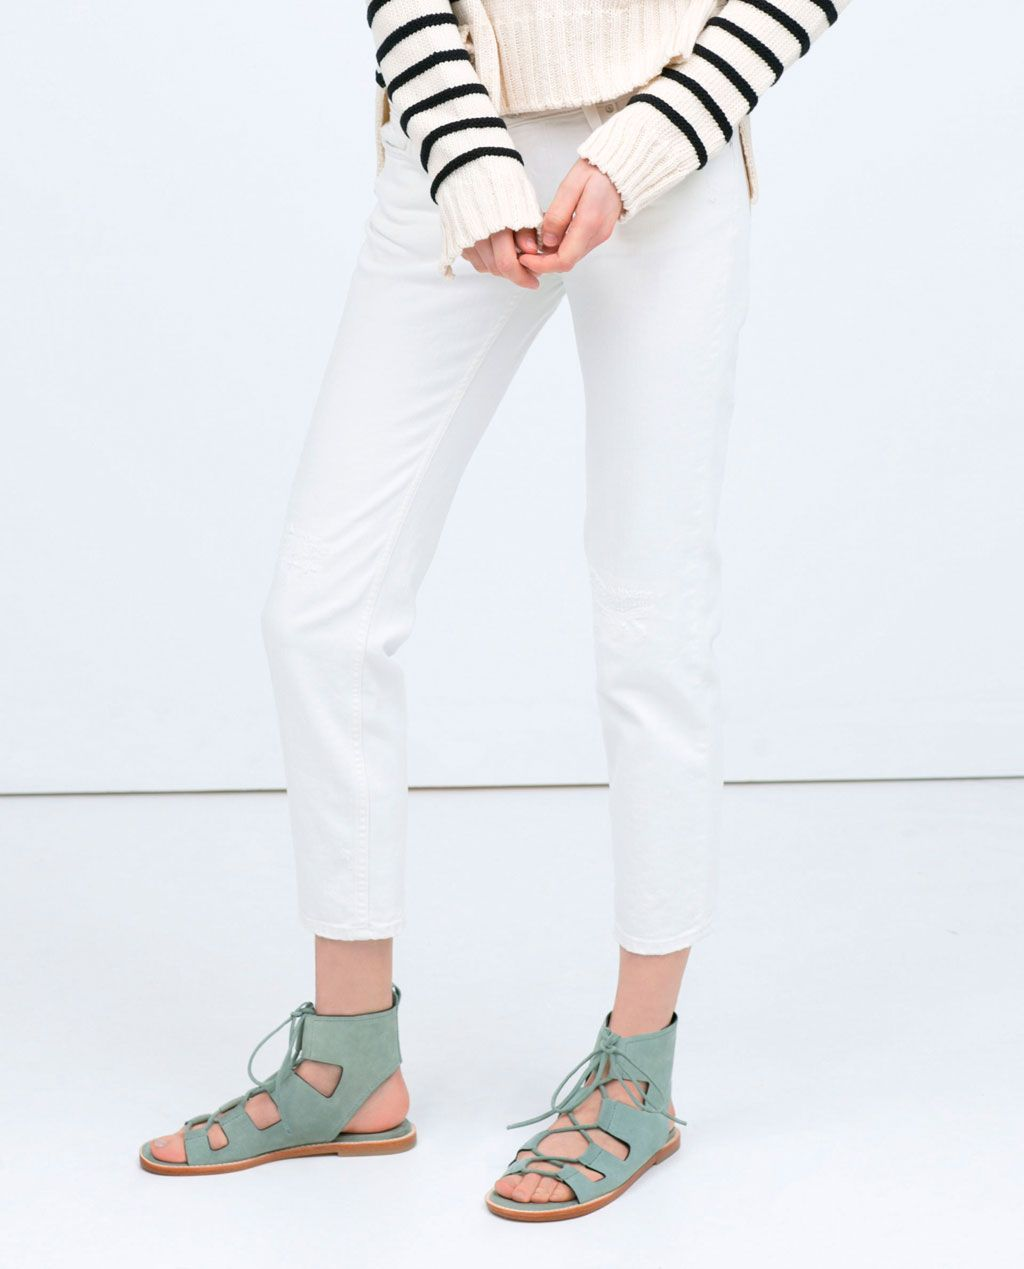 LEATHER ROMAN SANDAL pastel mint green color | front lace-up closure from Zara #pastel #roman